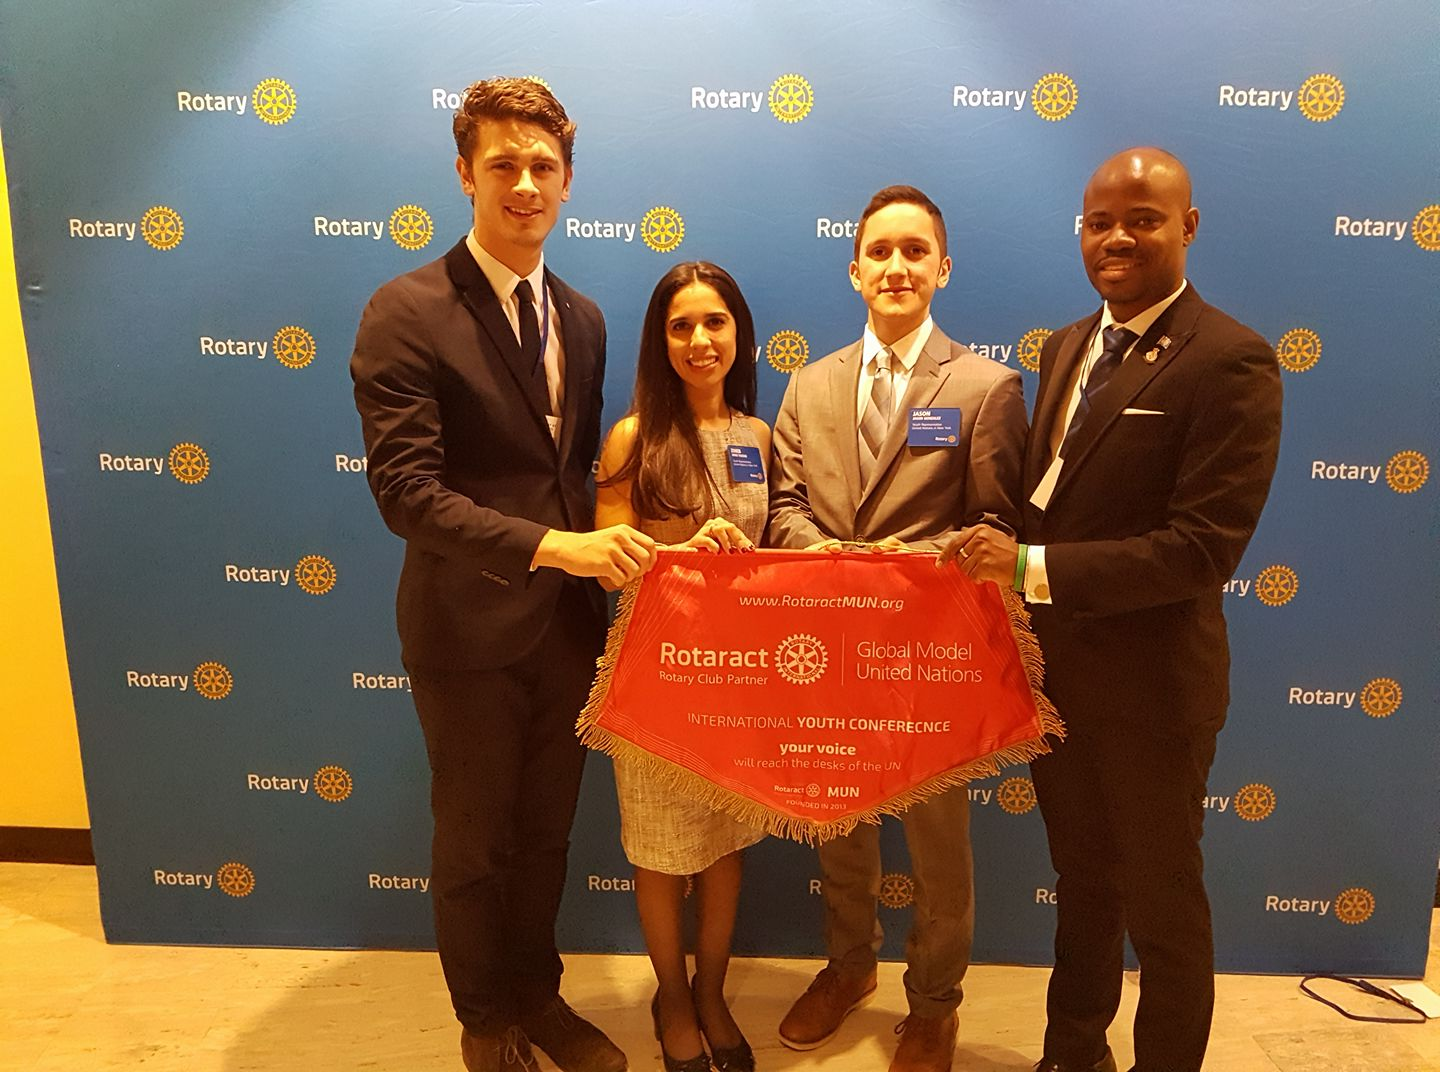 rotaract mun 2016 at new york change the world un headquarters